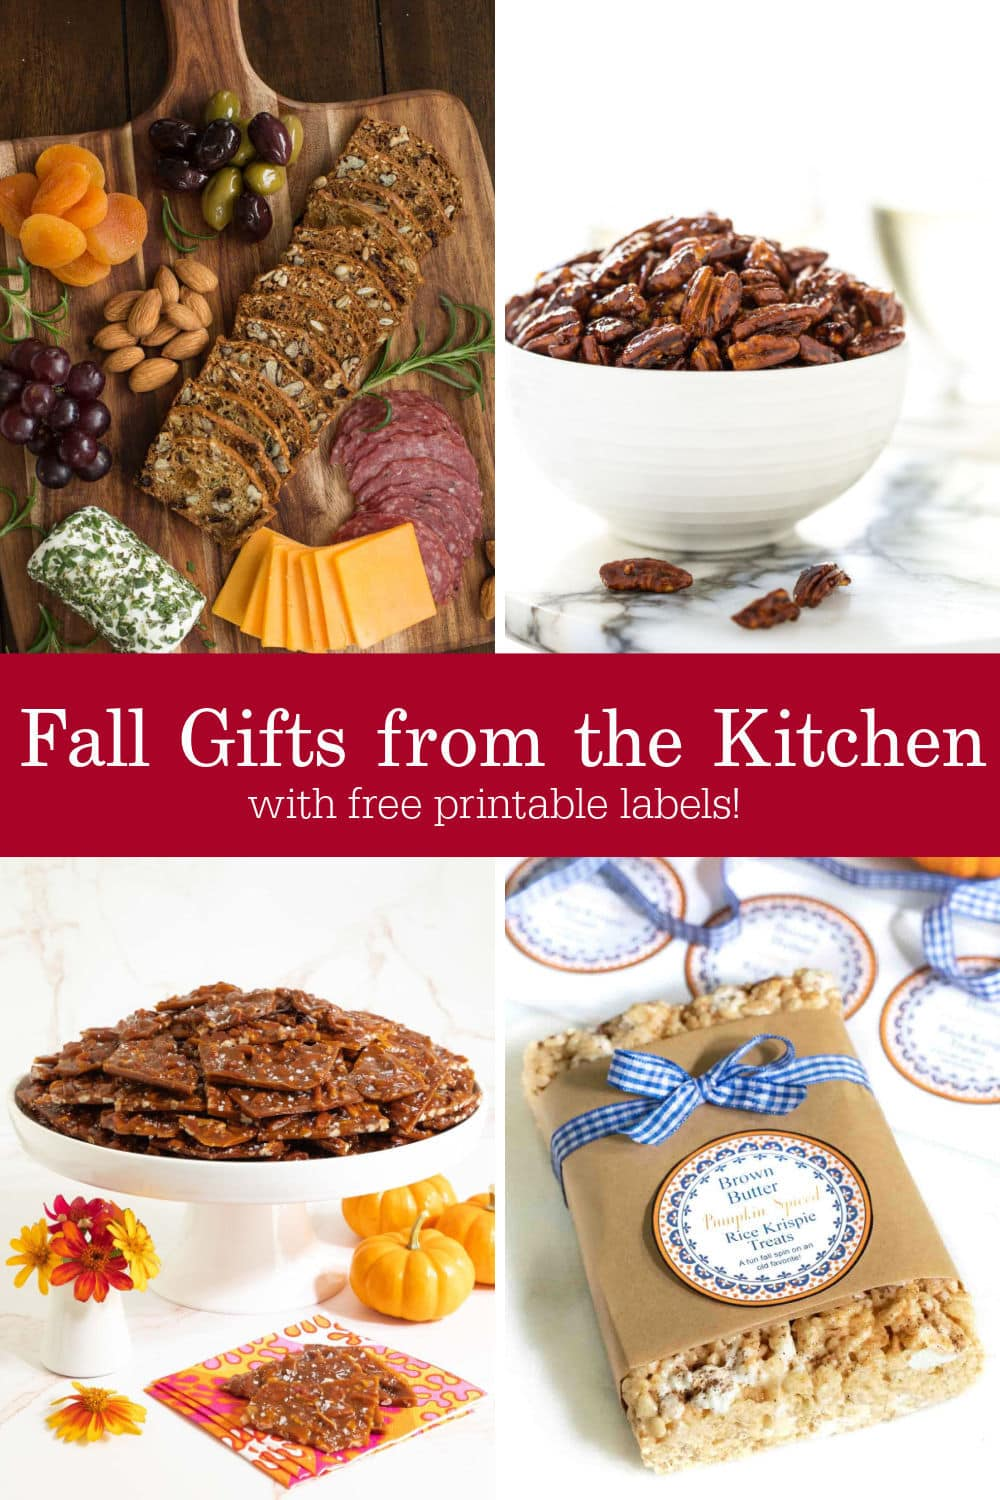 Fall Gifts from the Kitchen - Easy, Fun and Delicious!